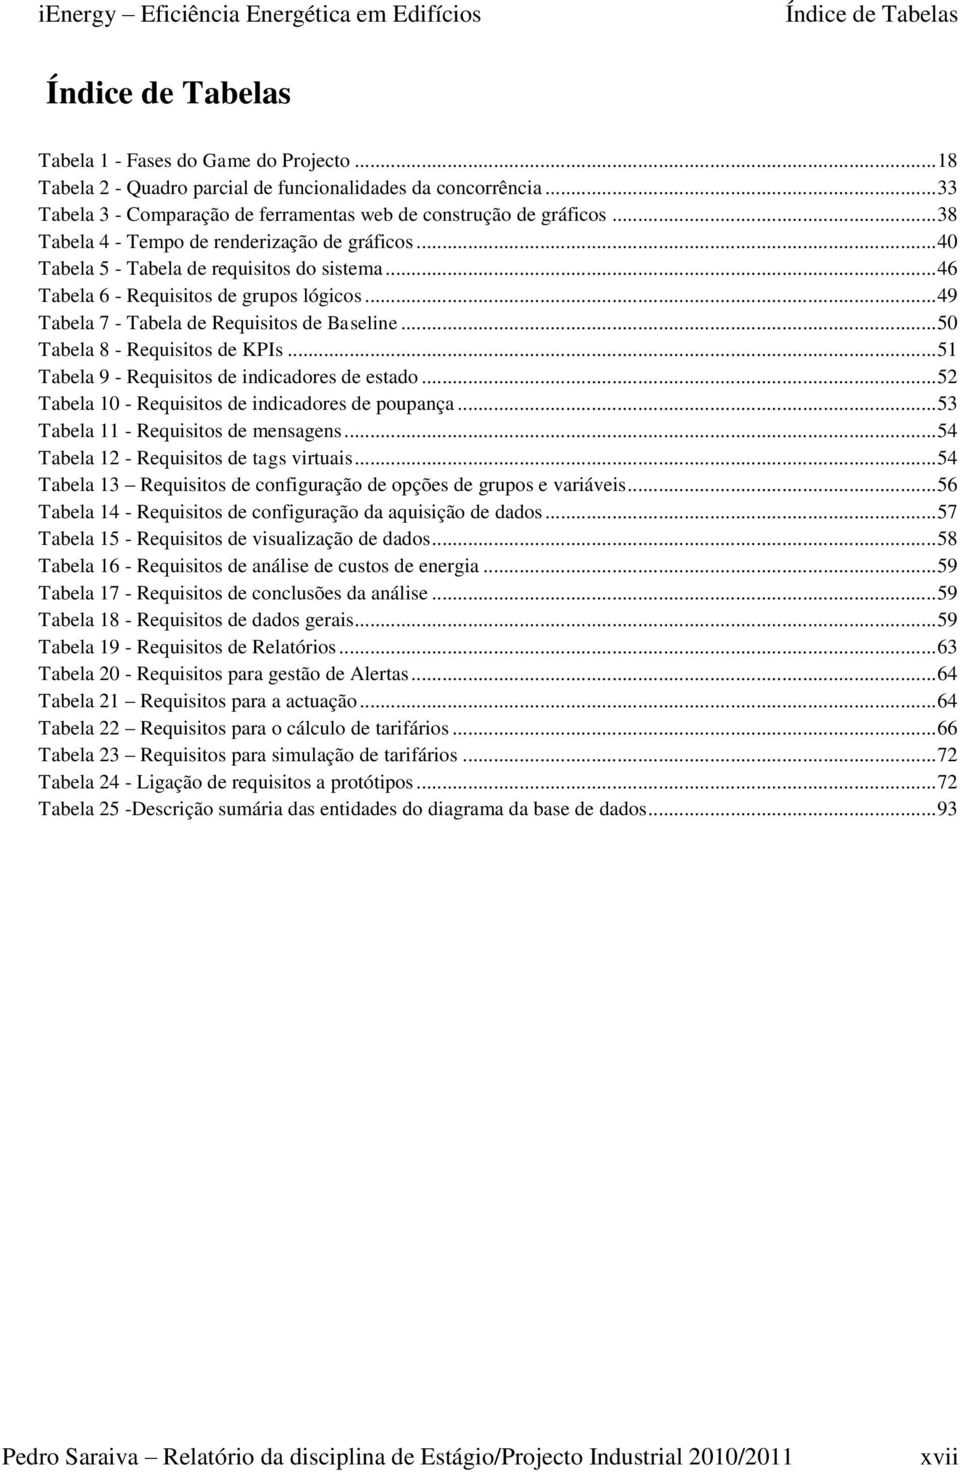 .. 46 Tabela 6 - Requisitos de grupos lógicos... 49 Tabela 7 - Tabela de Requisitos de Baseline... 50 Tabela 8 - Requisitos de KPIs... 51 Tabela 9 - Requisitos de indicadores de estado.